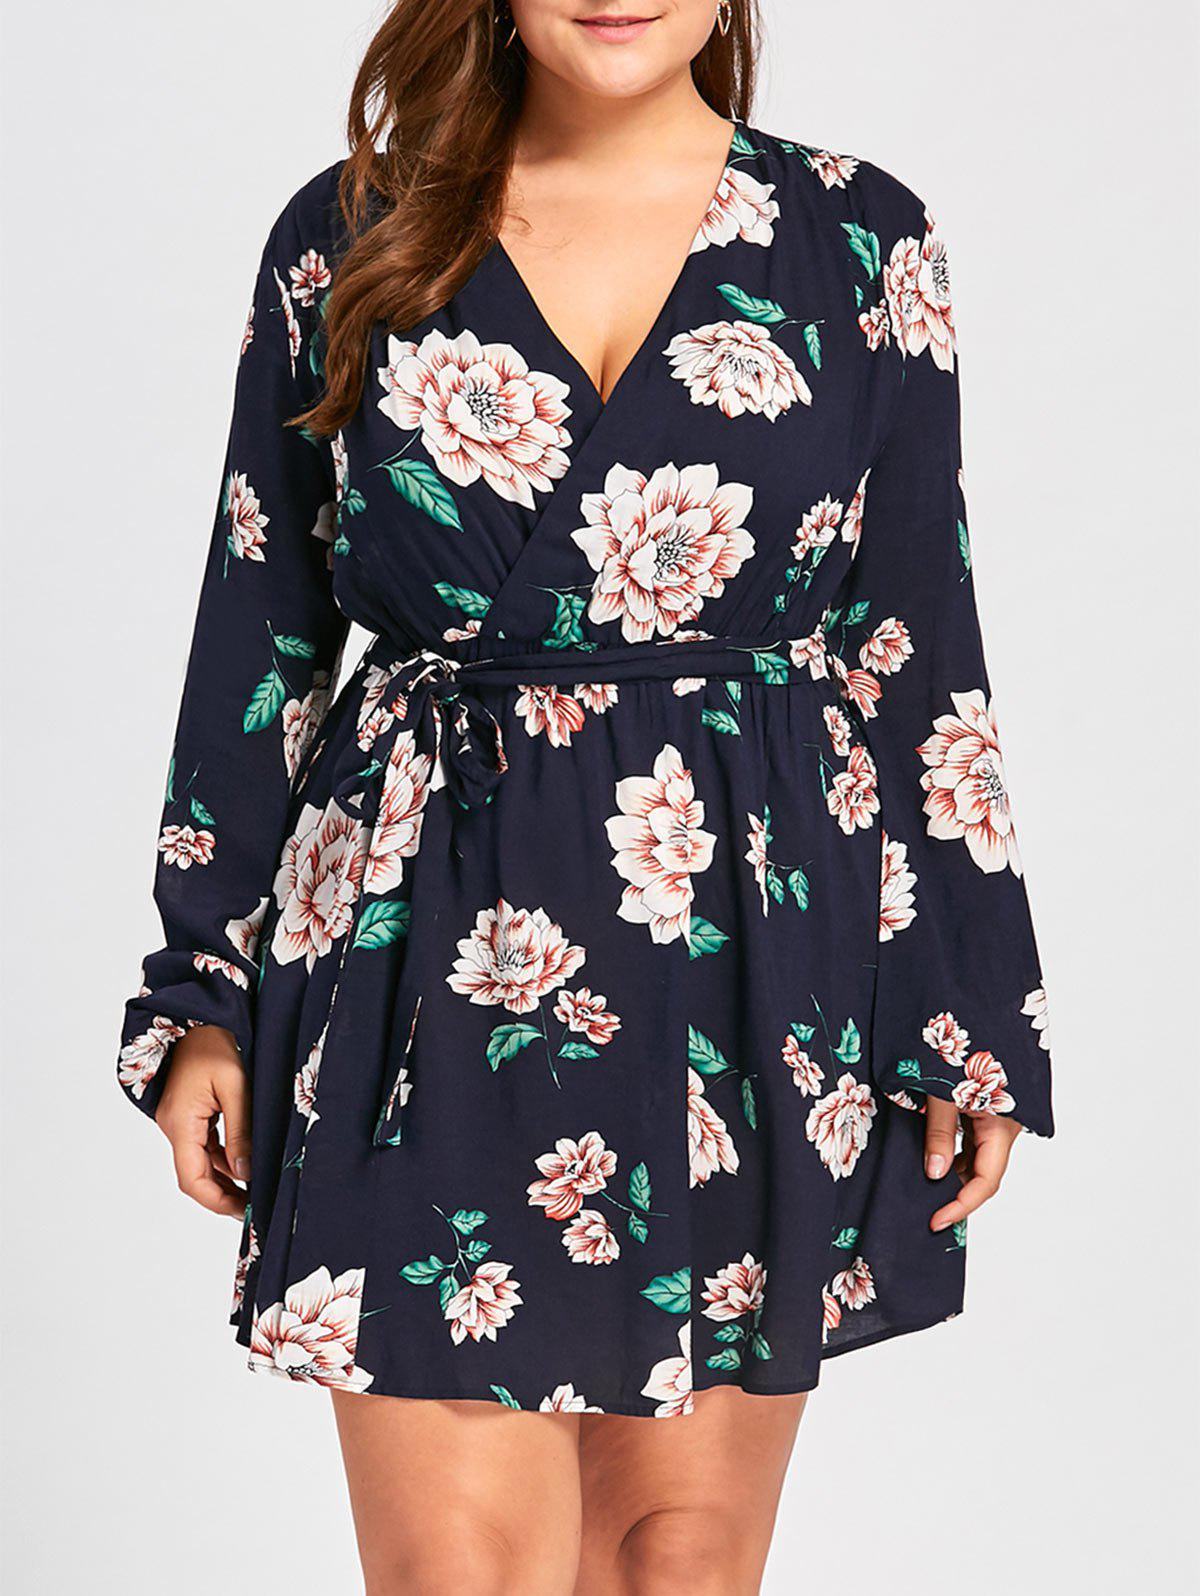 Plus Size Long Sleeve Floral DressWOMEN<br><br>Size: 3XL; Color: BLACK BLUE; Style: Brief; Material: Rayon; Silhouette: A-Line; Dresses Length: Mini; Neckline: V-Neck; Sleeve Length: Long Sleeves; Pattern Type: Floral; With Belt: Yes; Season: Fall,Spring,Summer; Weight: 0.2700kg; Package Contents: 1 x Dress  1 x Belt;